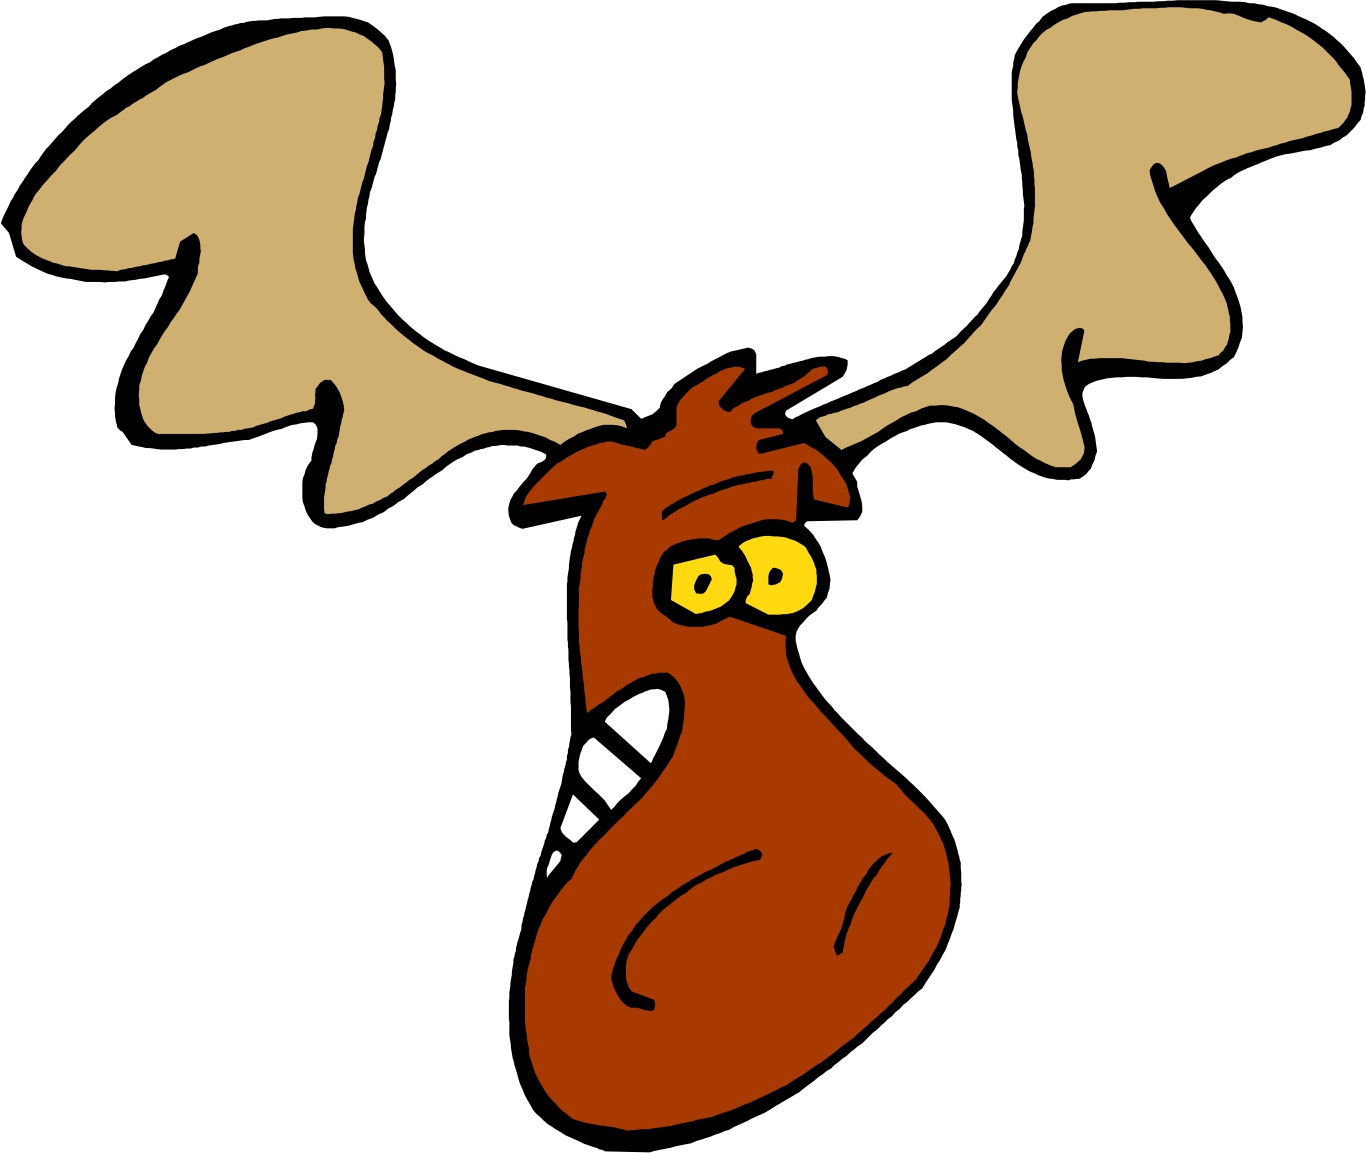 Moose Cartoon Images - Cliparts.co